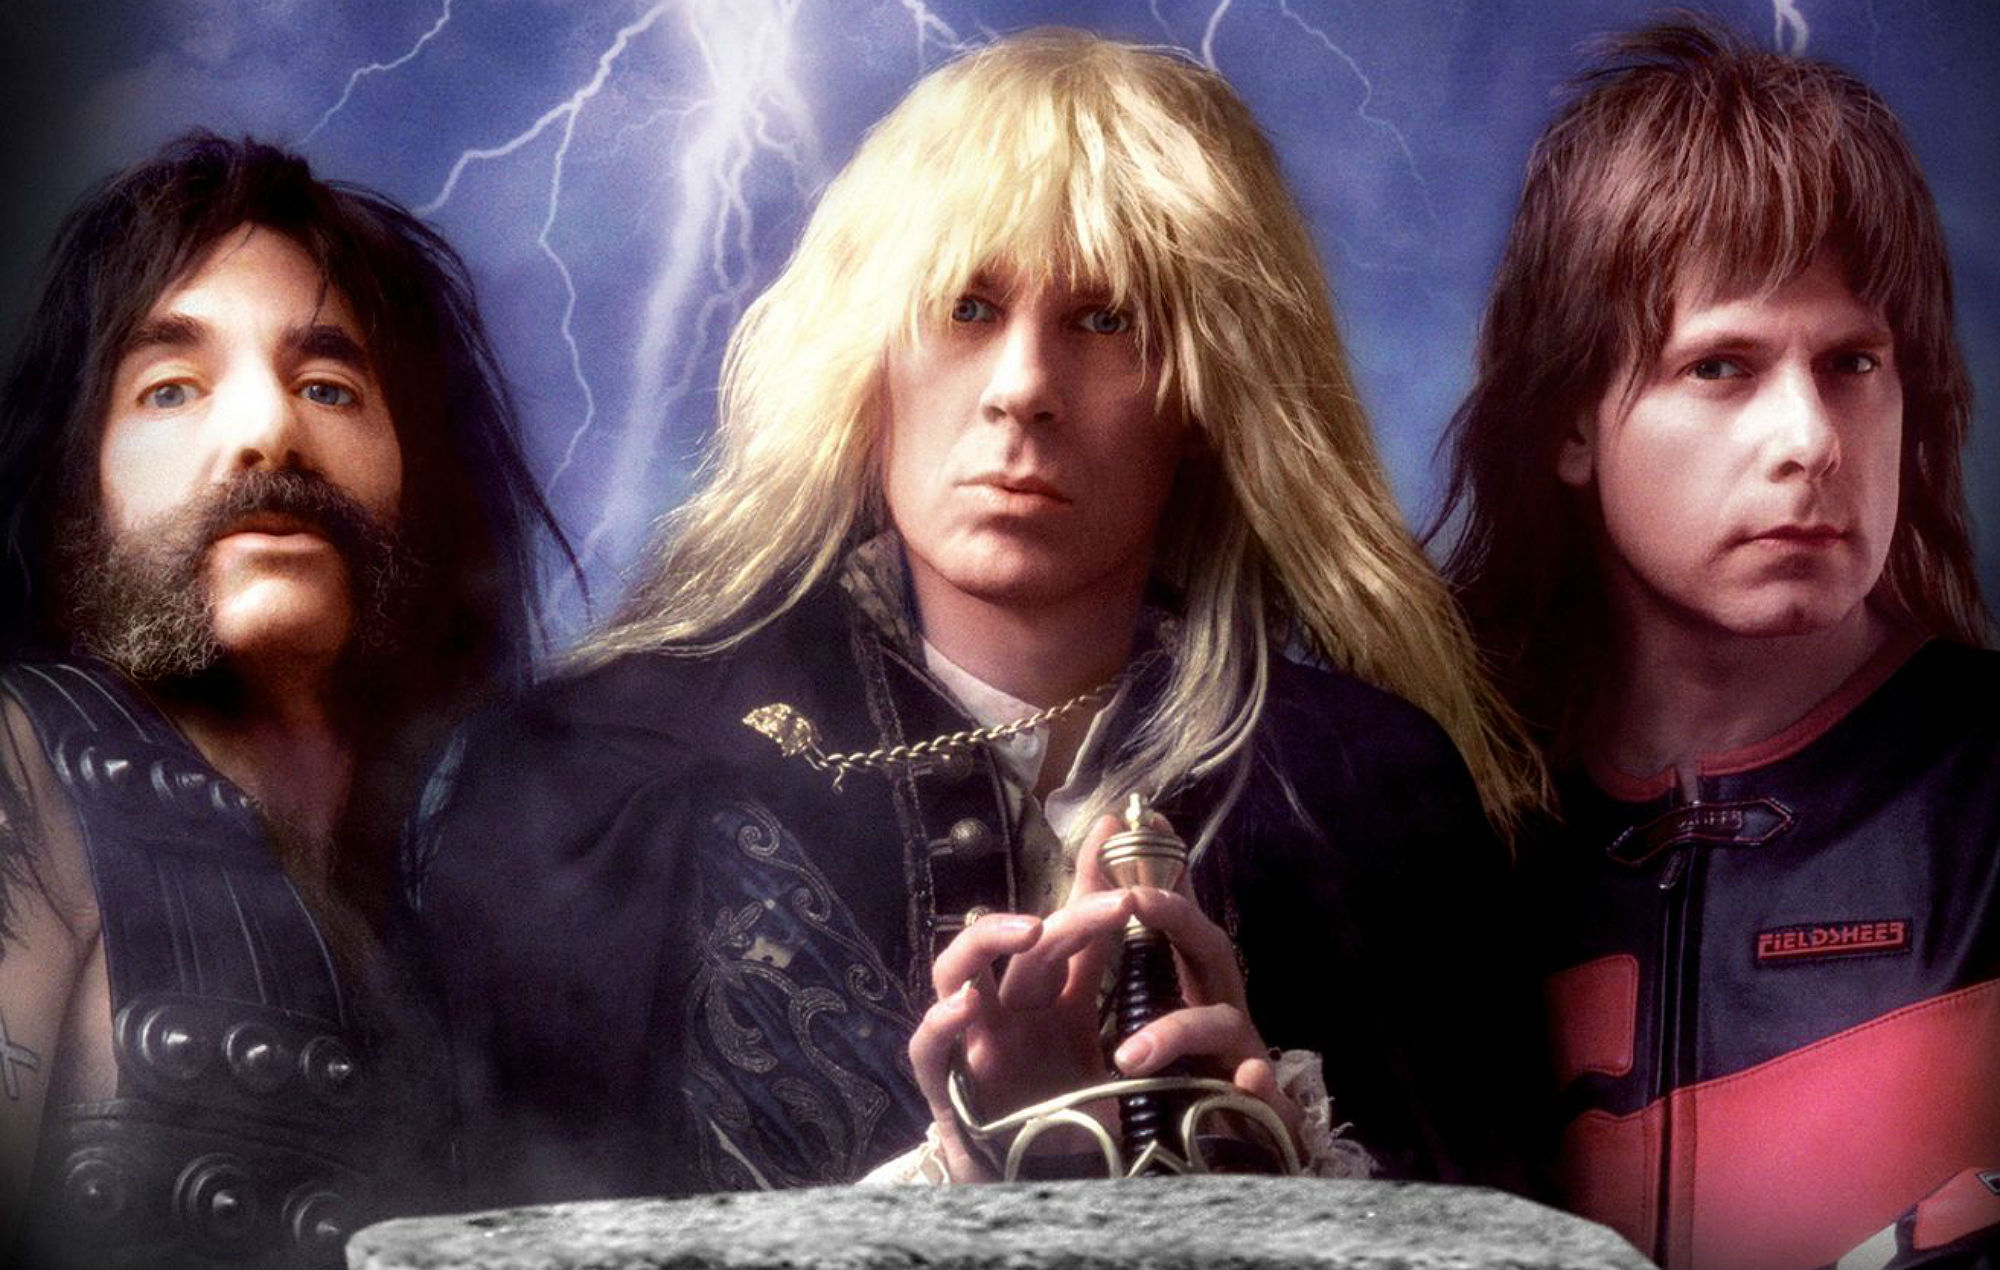 'This Is Spinal Tap' co-creators resolve copyright dispute